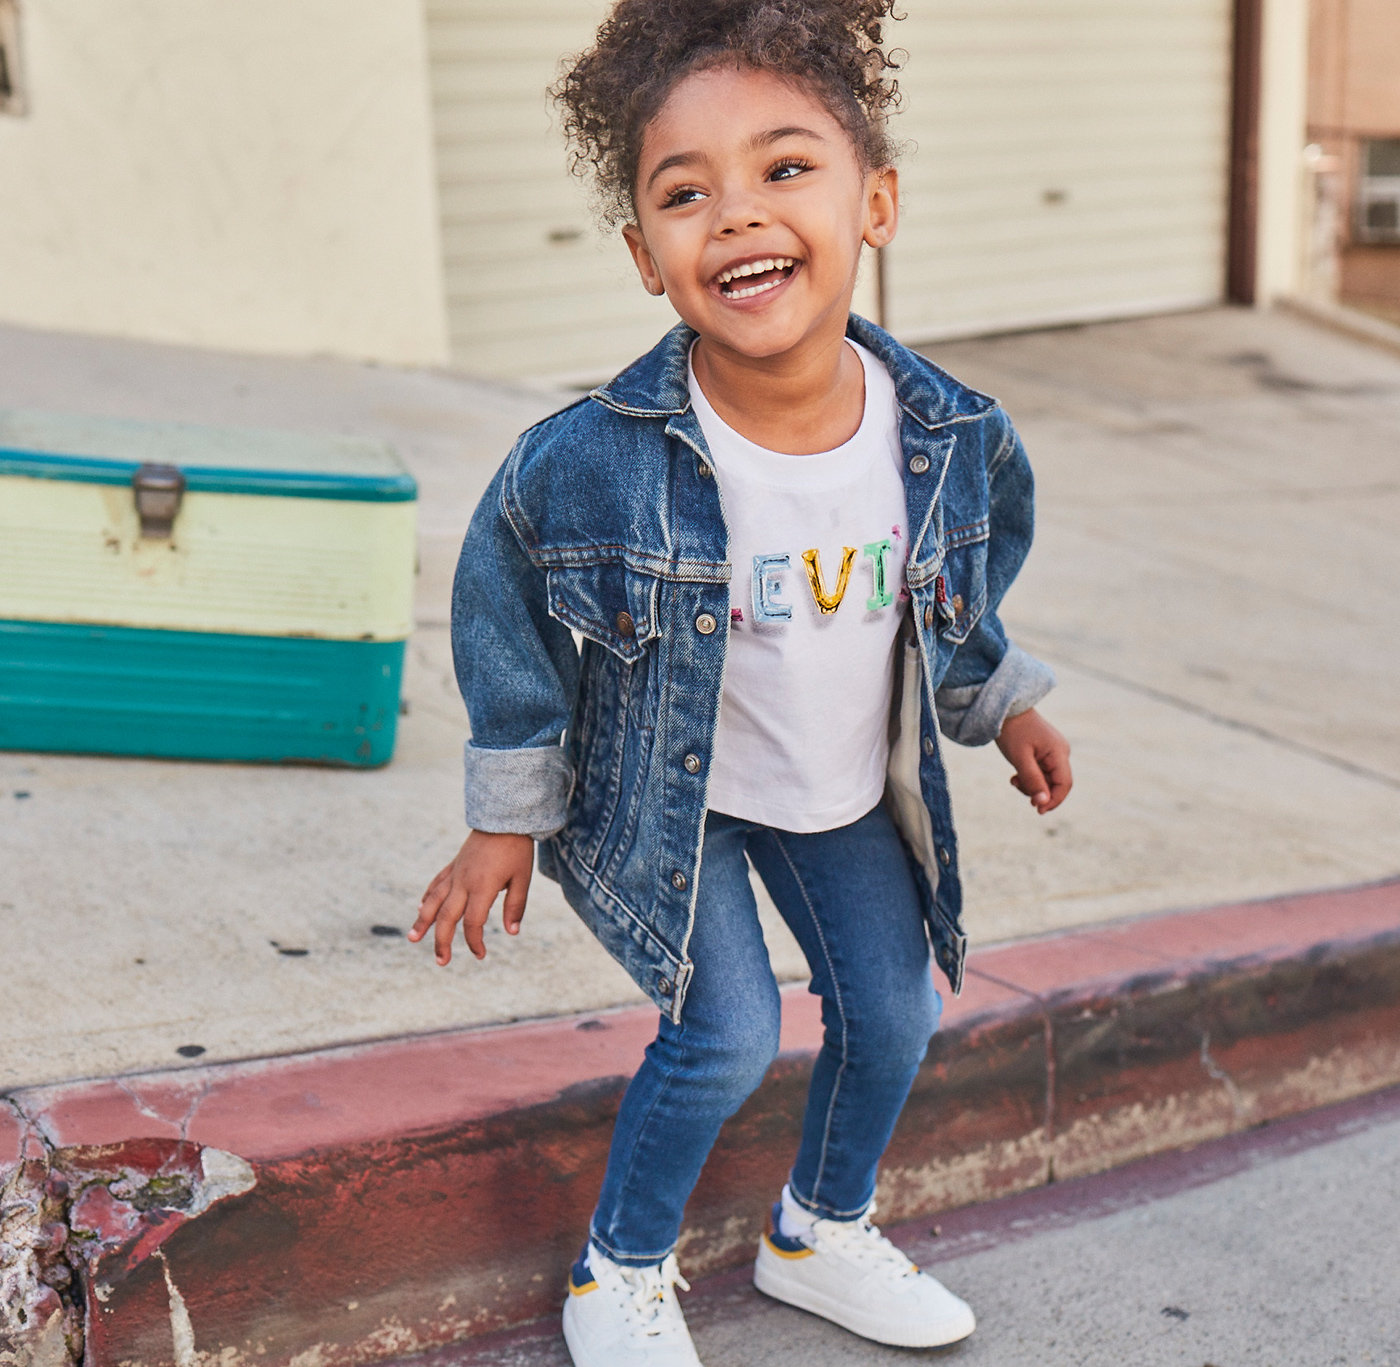 d4782caf5fbba Kids Clothes - Shop Clothes for Kids & Kids Jeans | Levi's® US